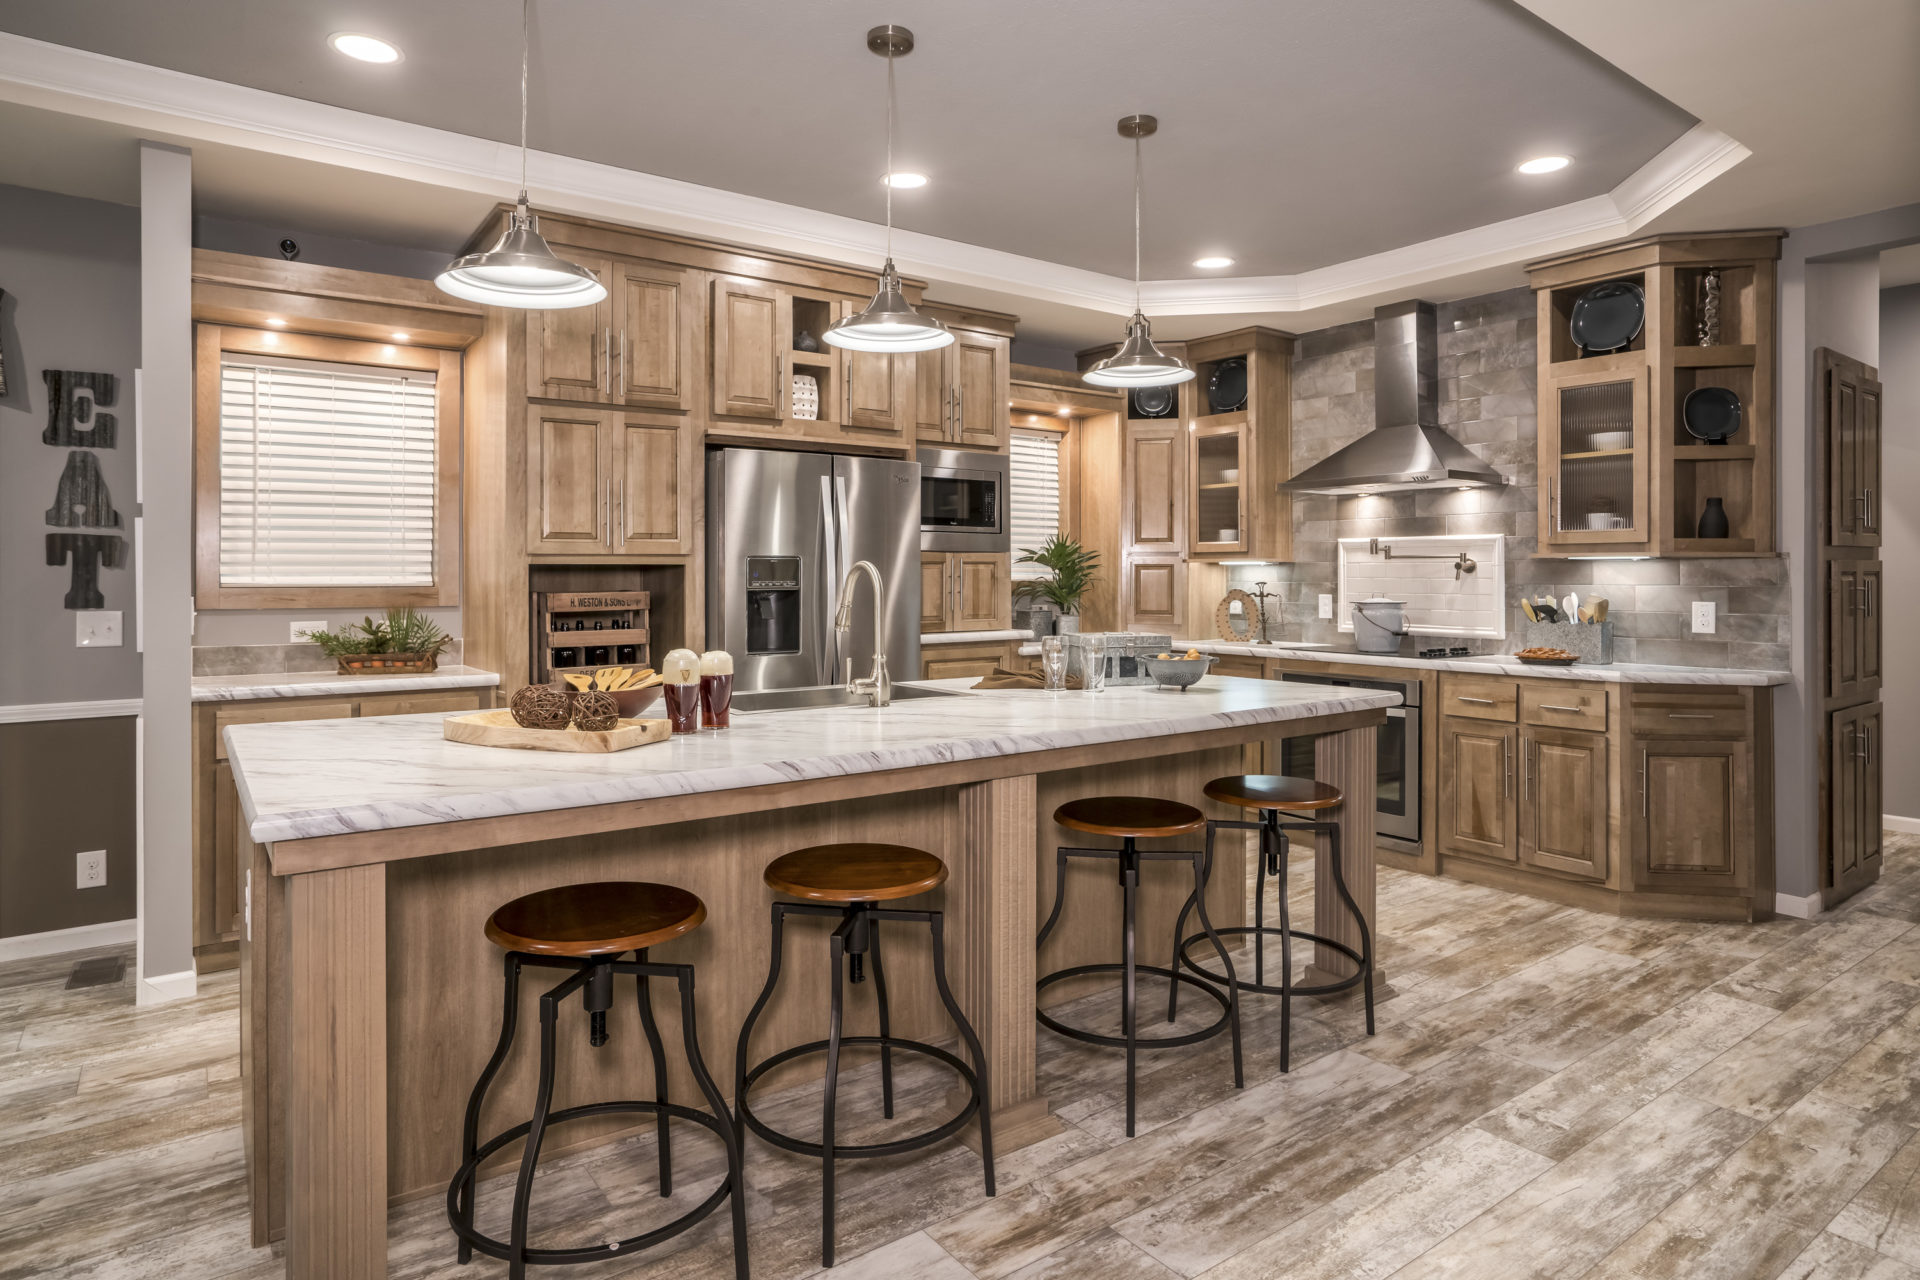 Michigan Manufactured Homes | Michigan Mobile Home Connection